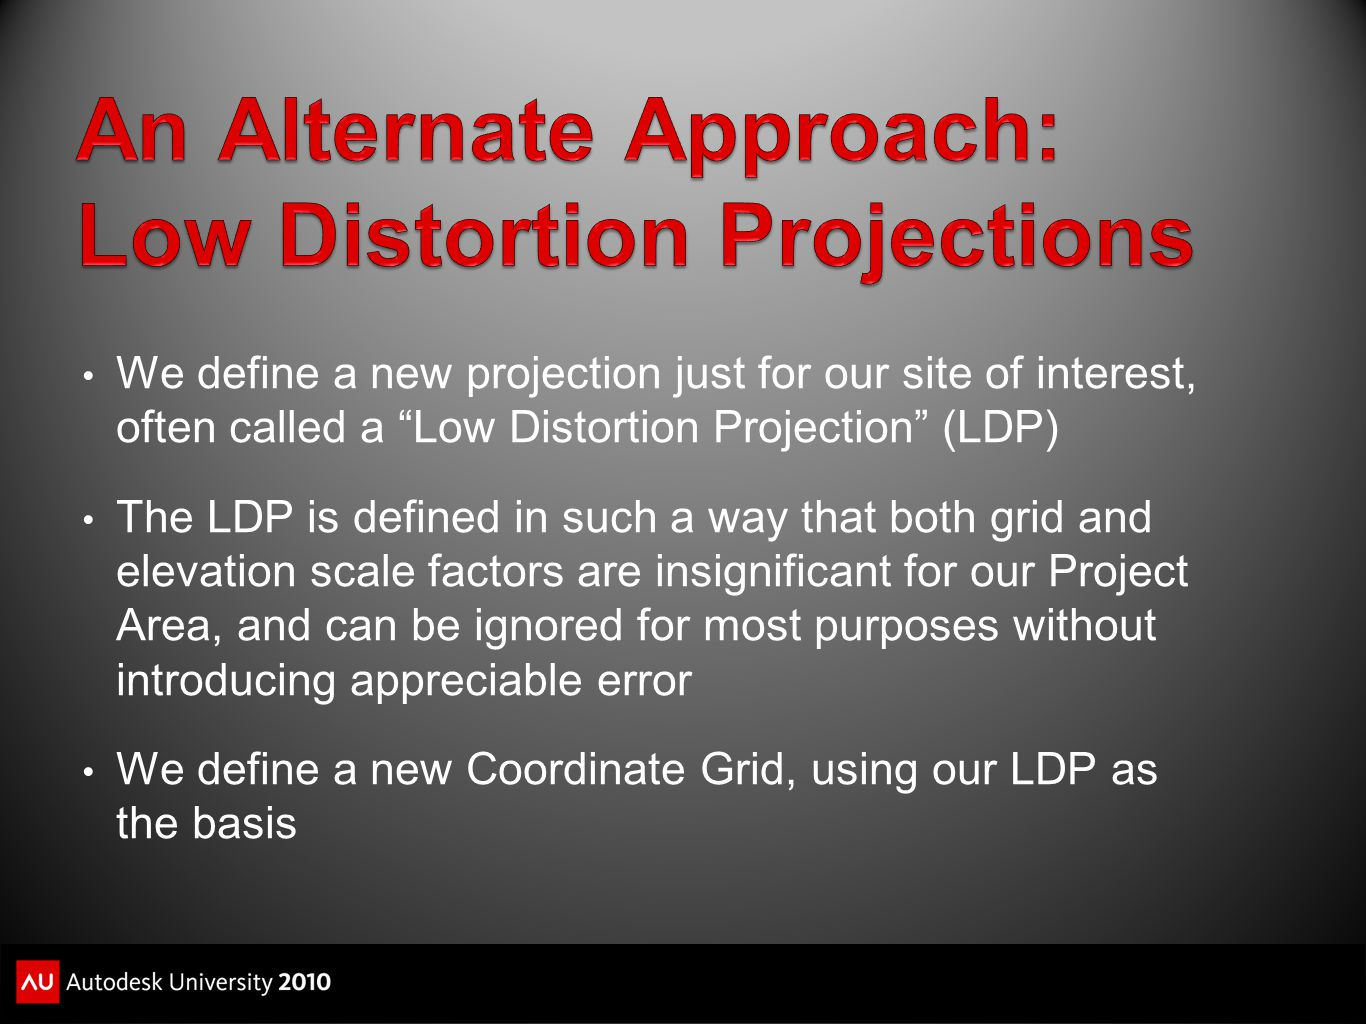 An Alternate Approach: Low Distortion Projections